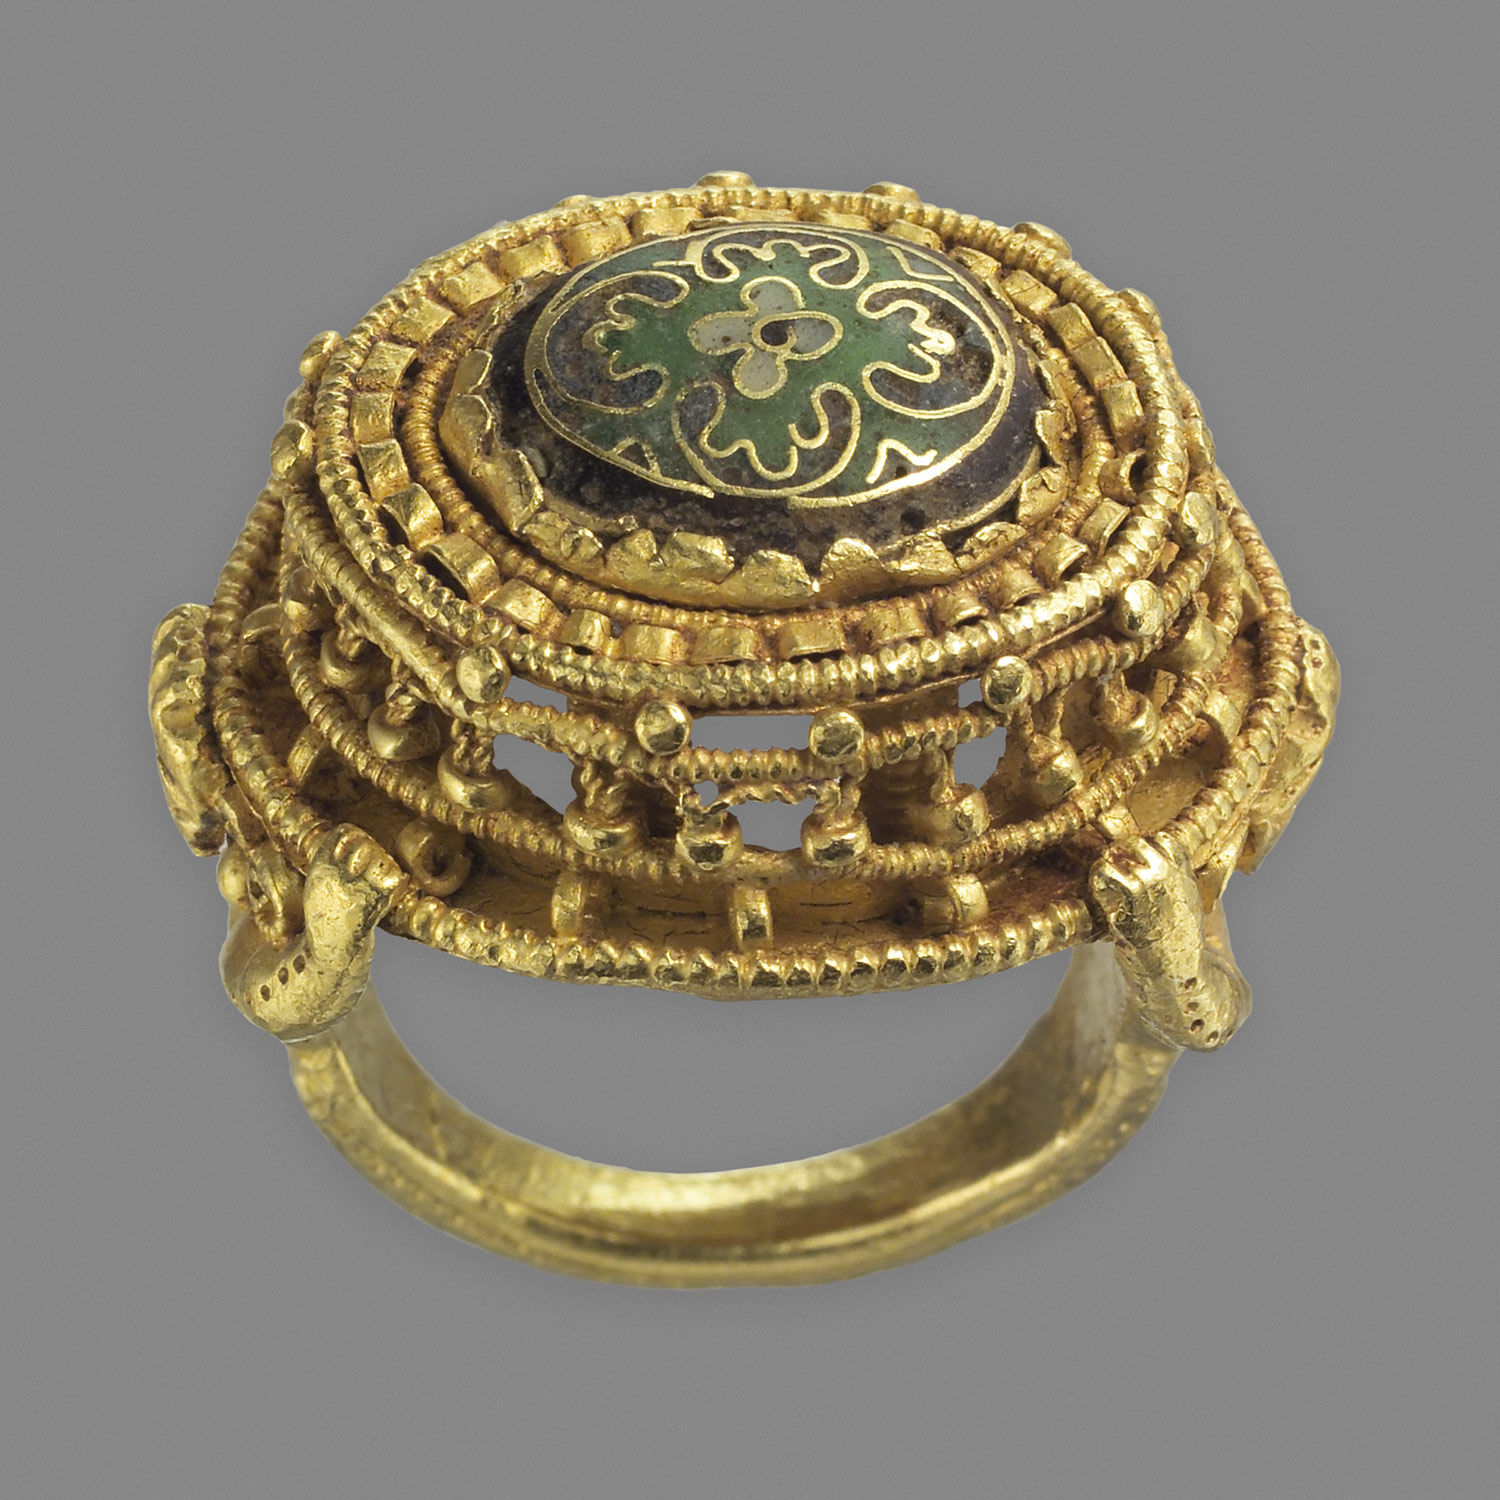 Gold Cloisonné Ring from the Middle Ages